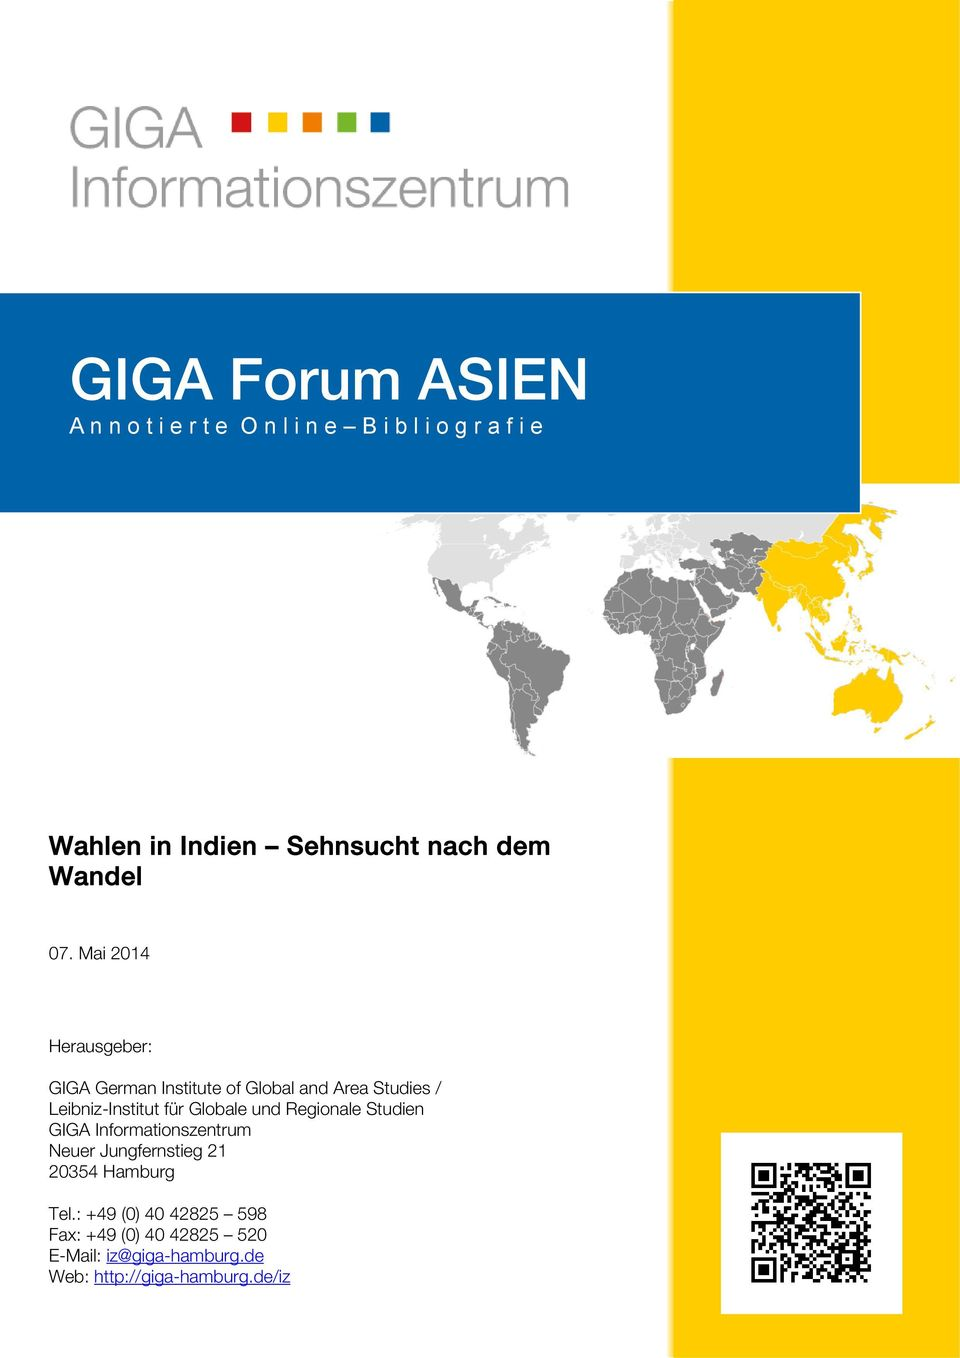 Mai 2014 Herausgeber: GIGA German Institute of Global and Area Studies / Leibniz-Institut für Globale